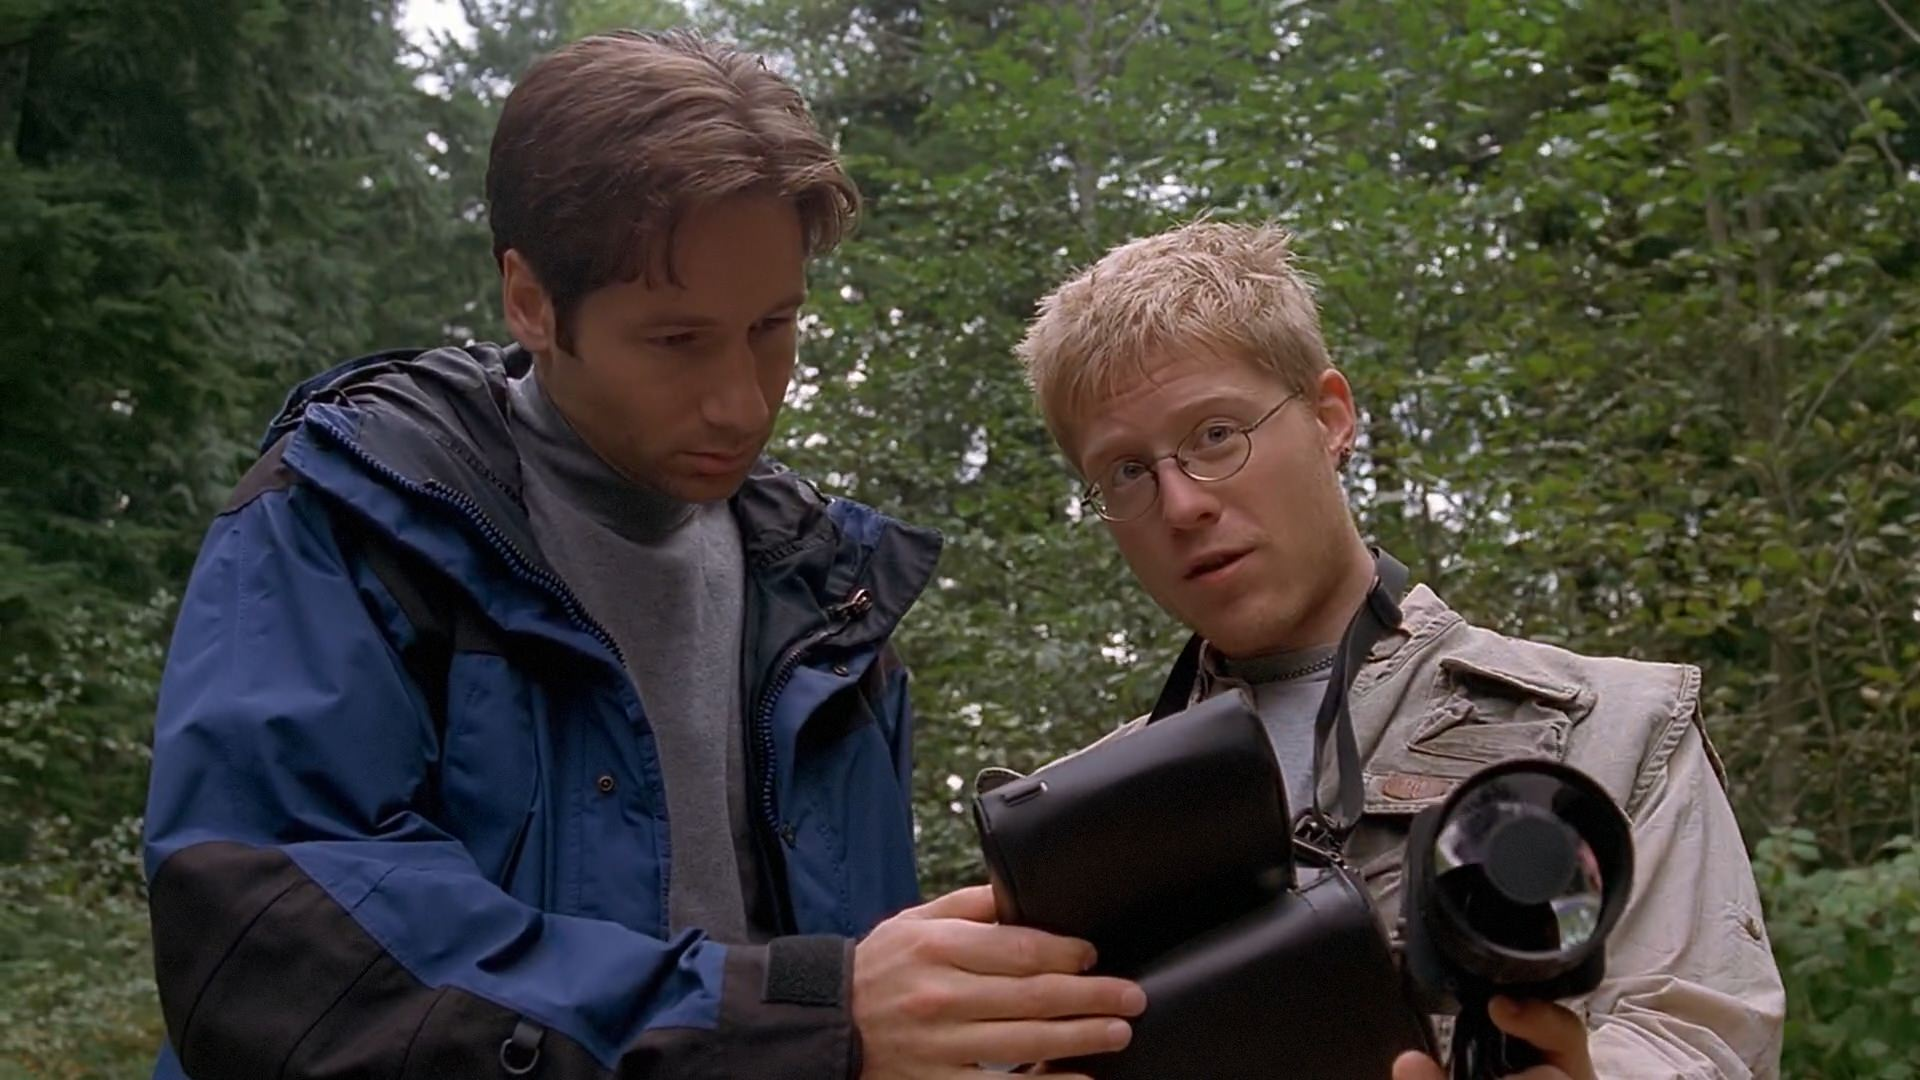 David Duchovny and Anthony Rapp in The X Files (1993)